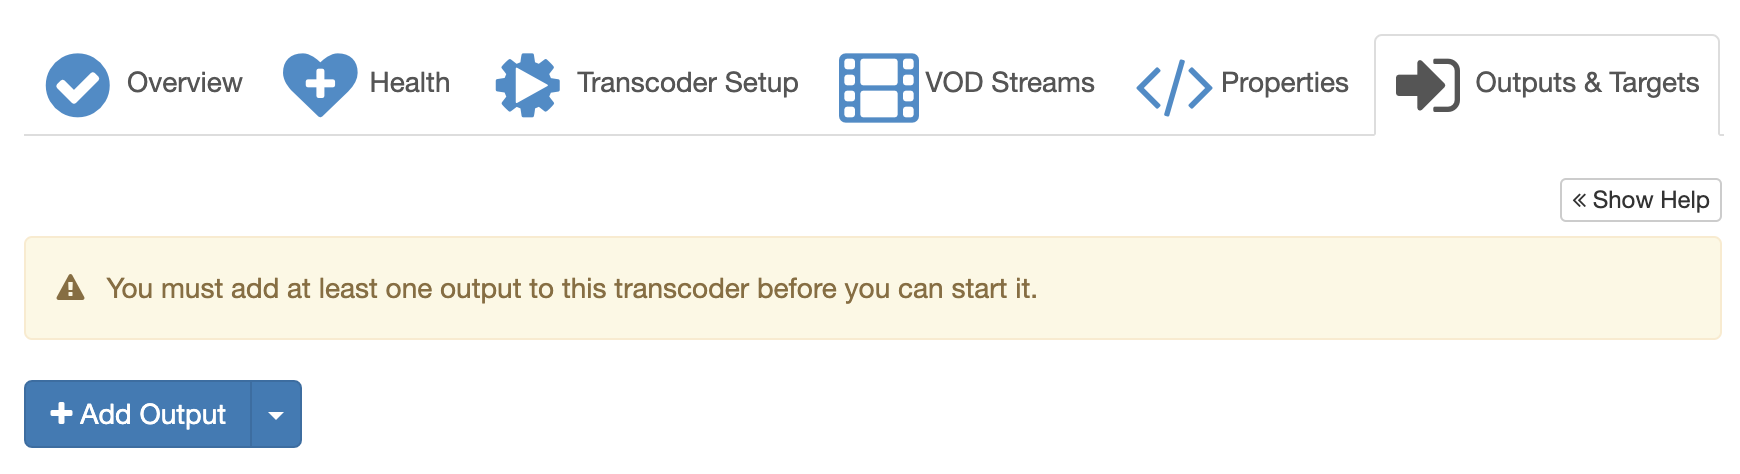 Empty output for transcoder